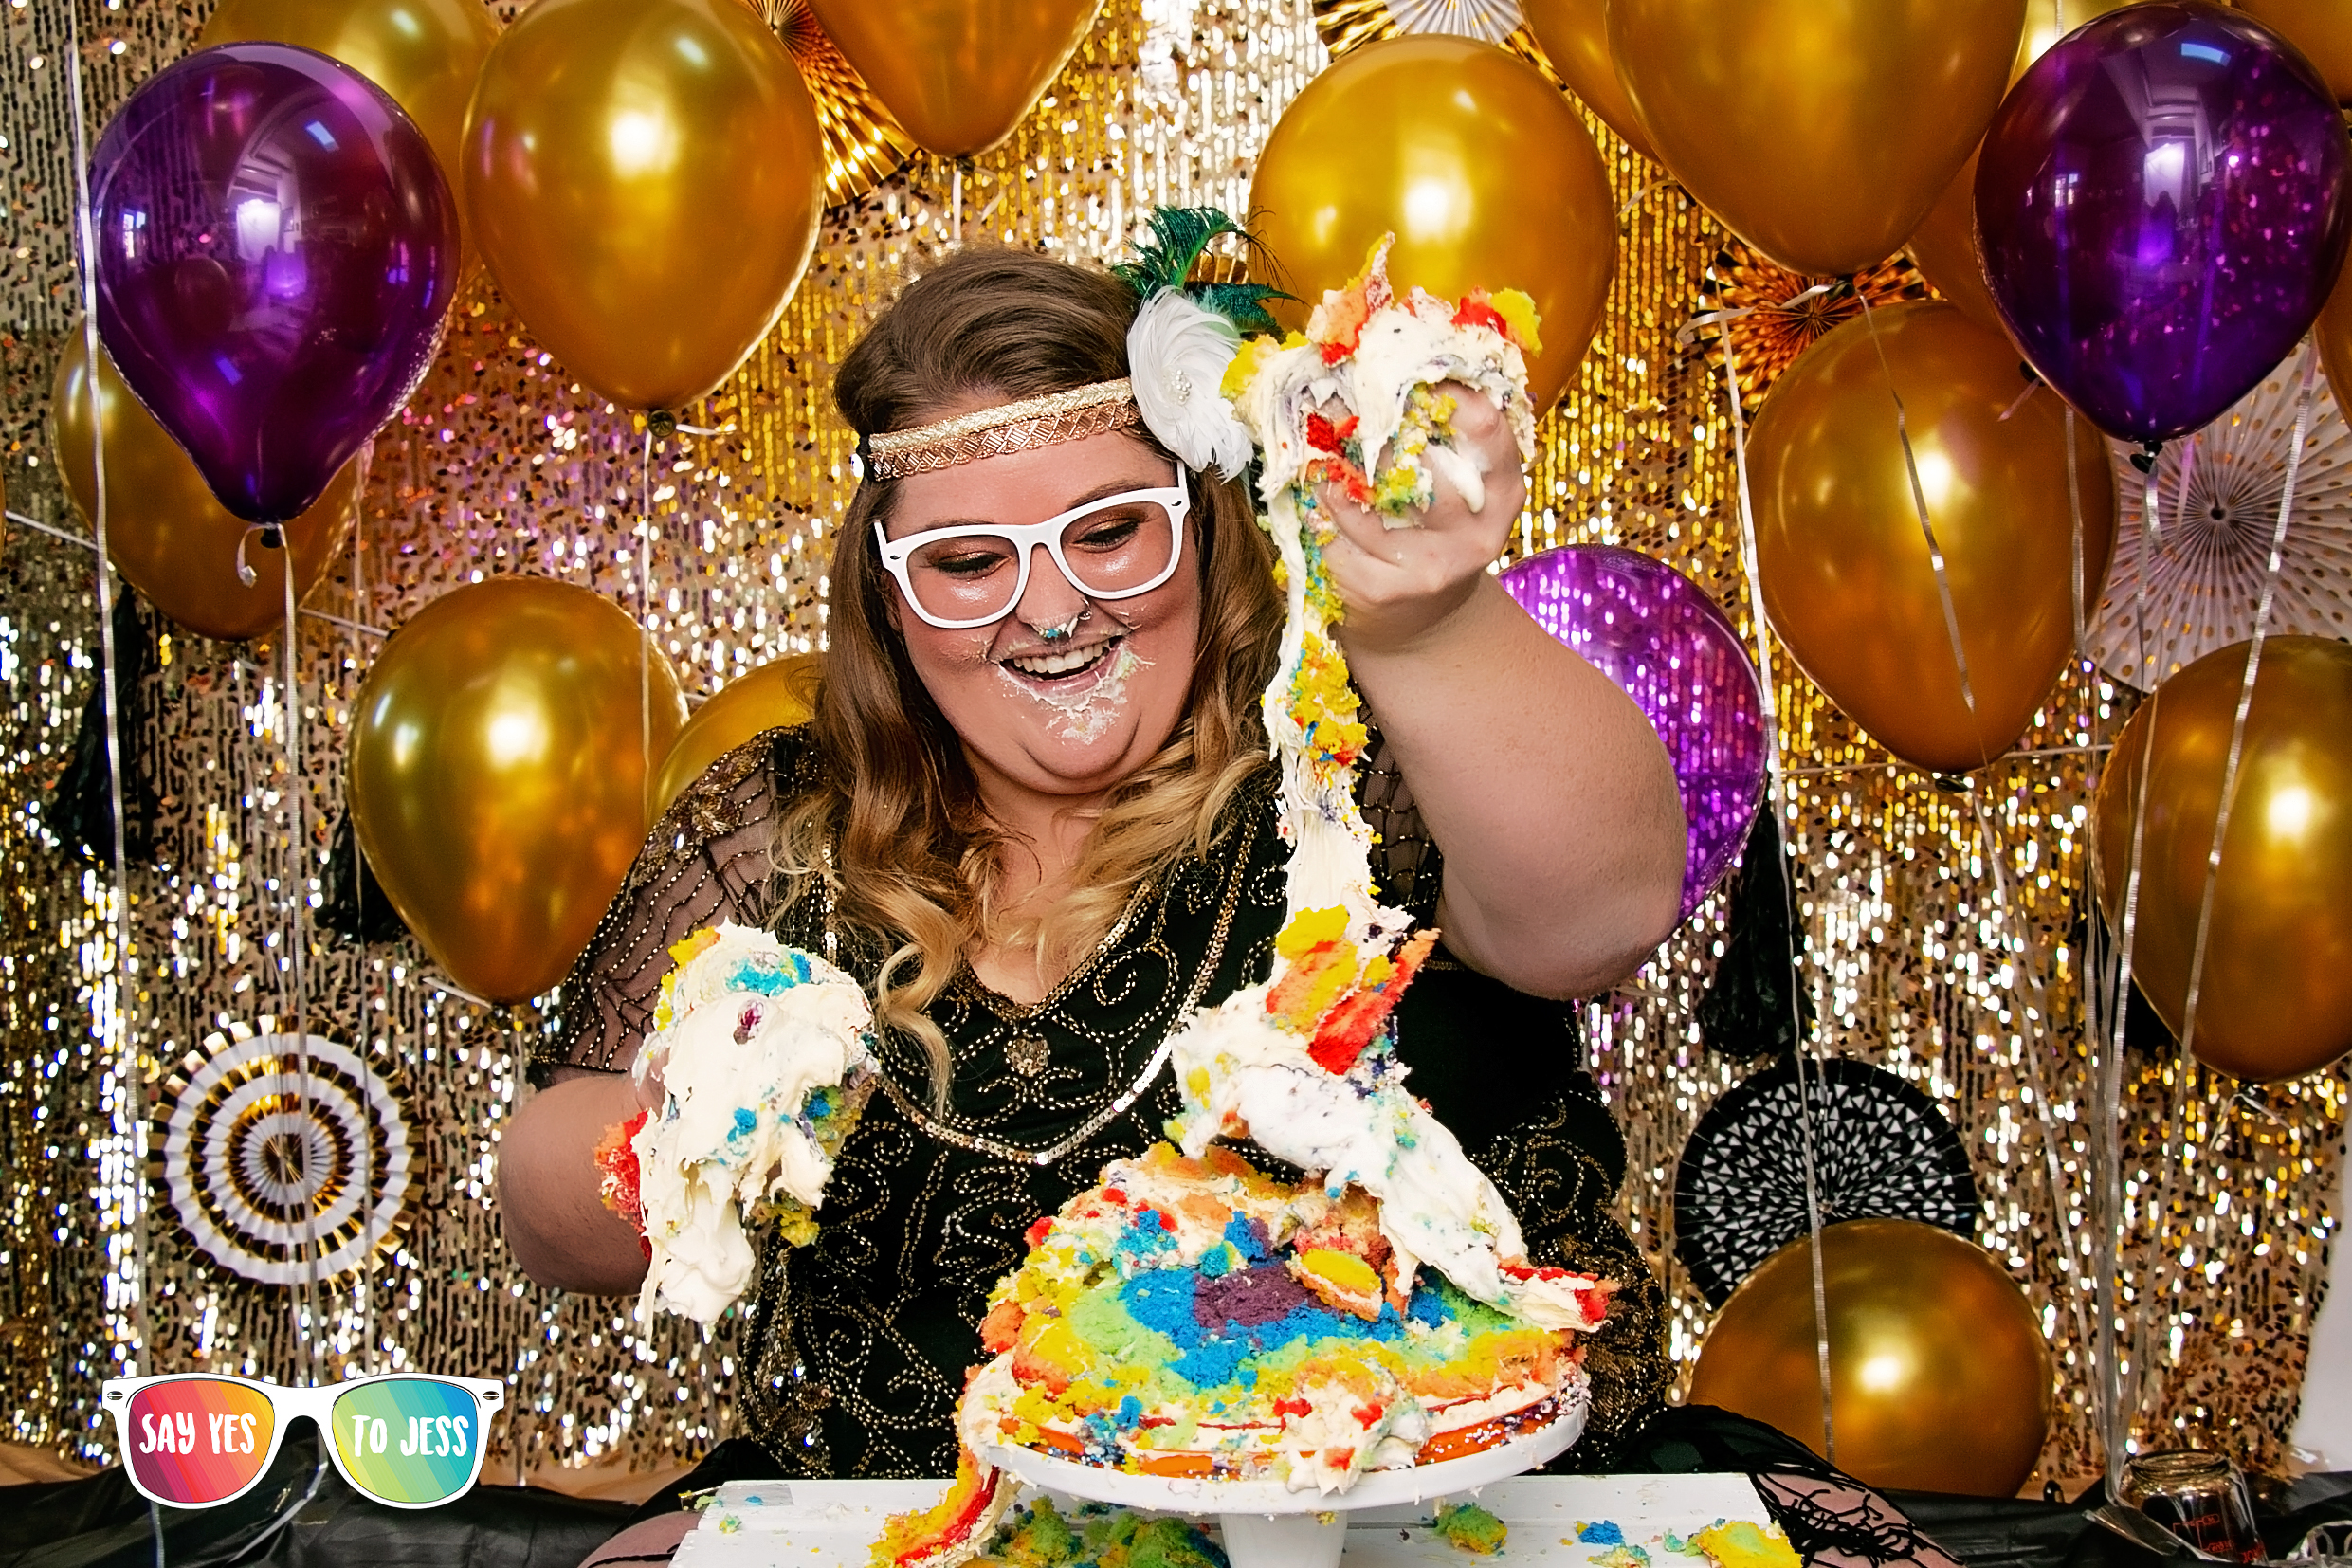 Cake smash Cincinnati Ohio Adult.jpg